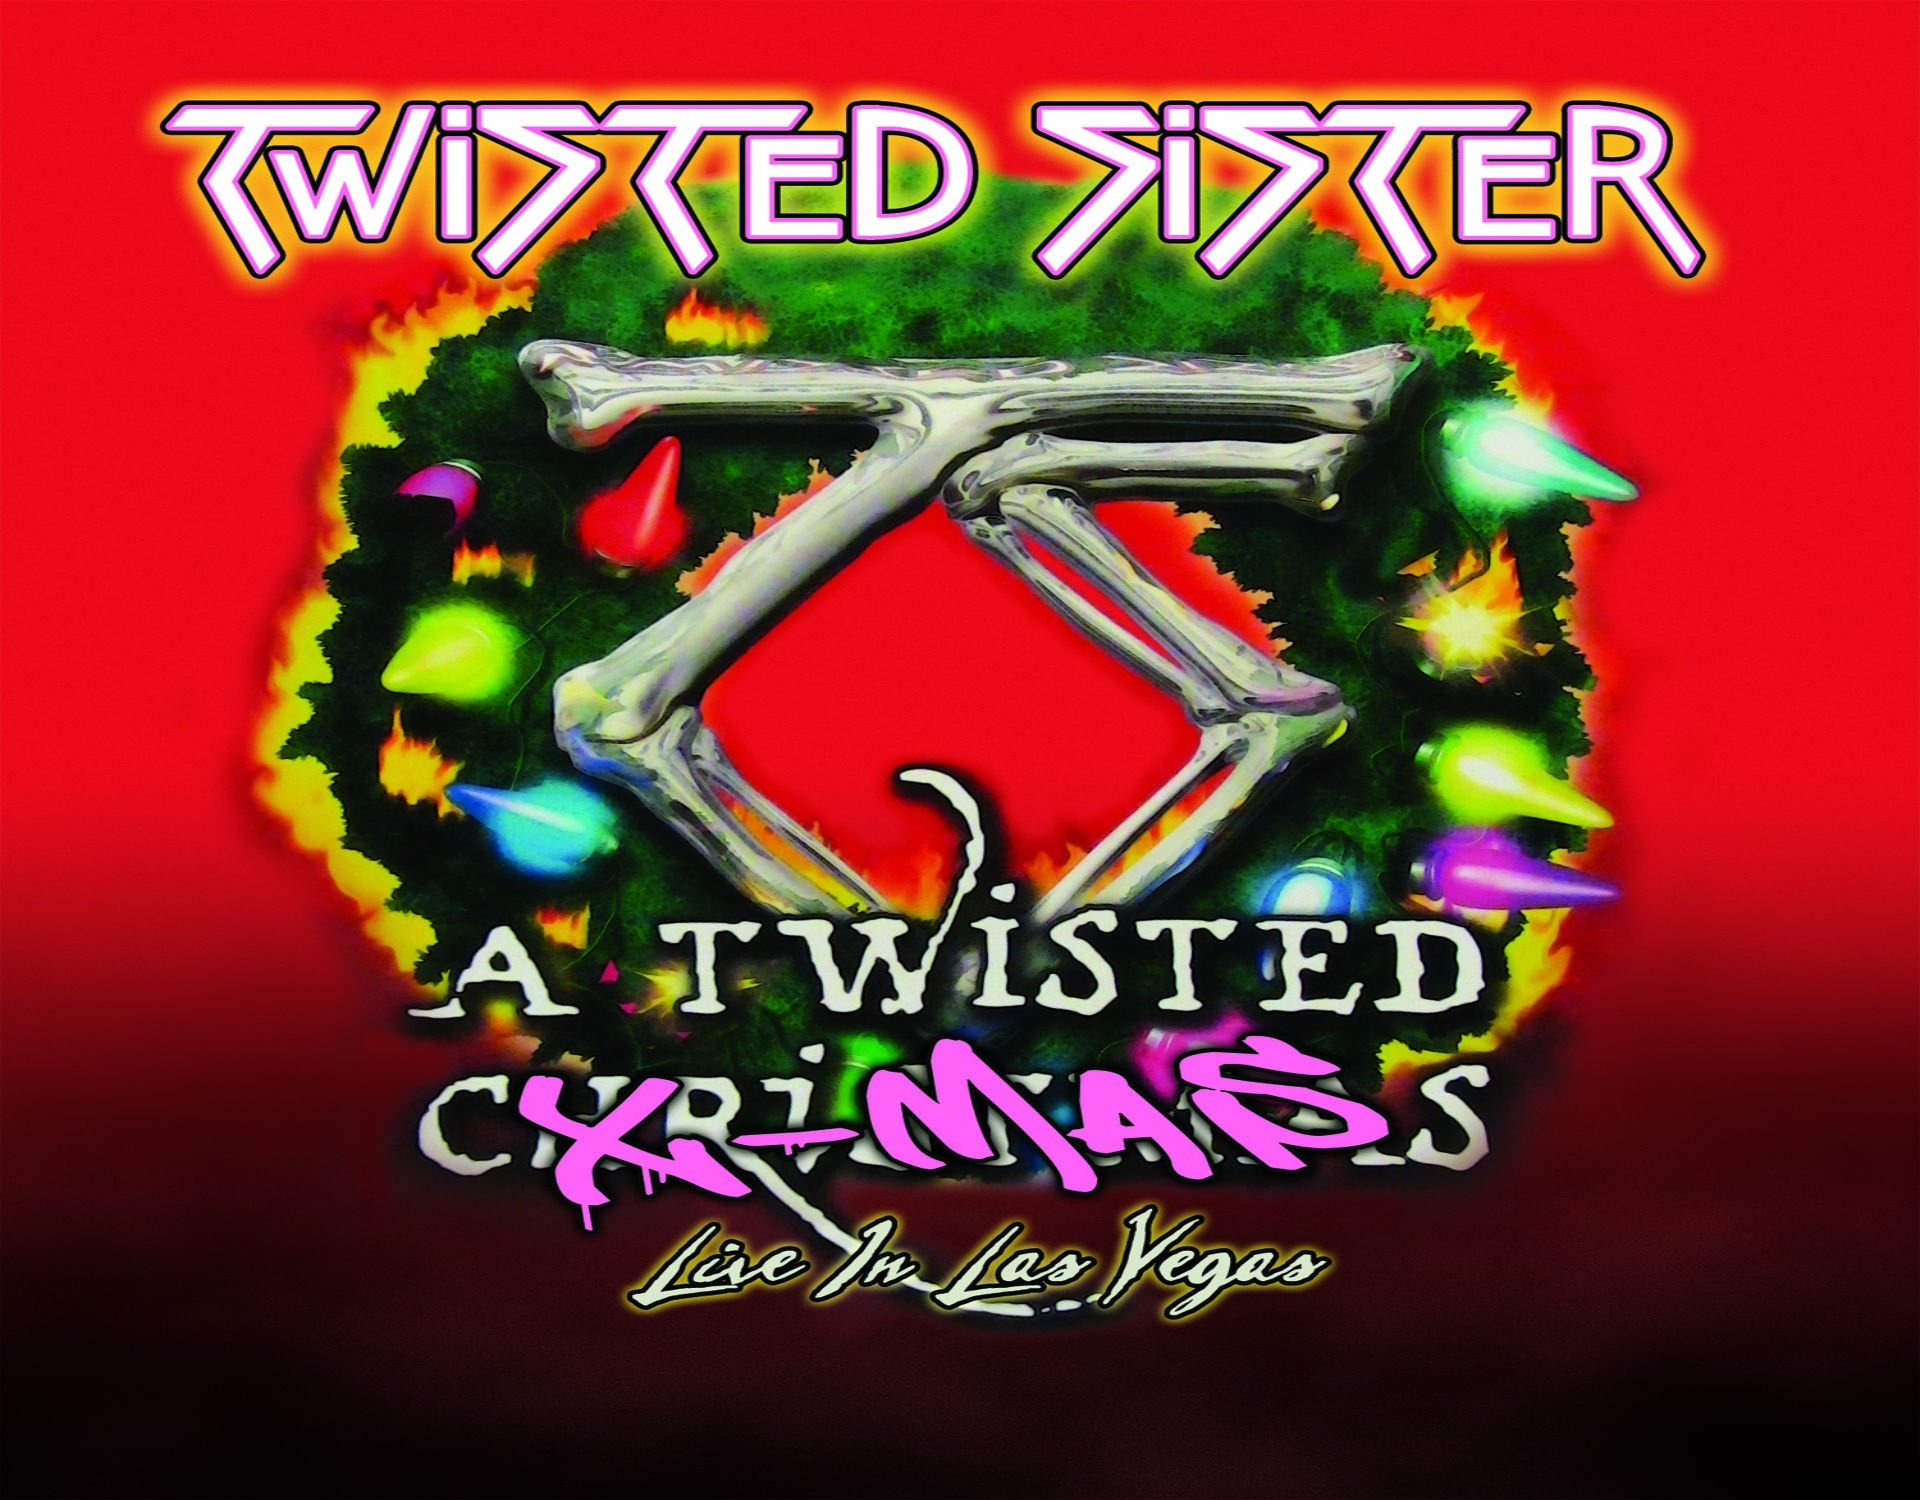 Heavy metal christmas holiday twisted sister wallpaper | 1920x1500 ...